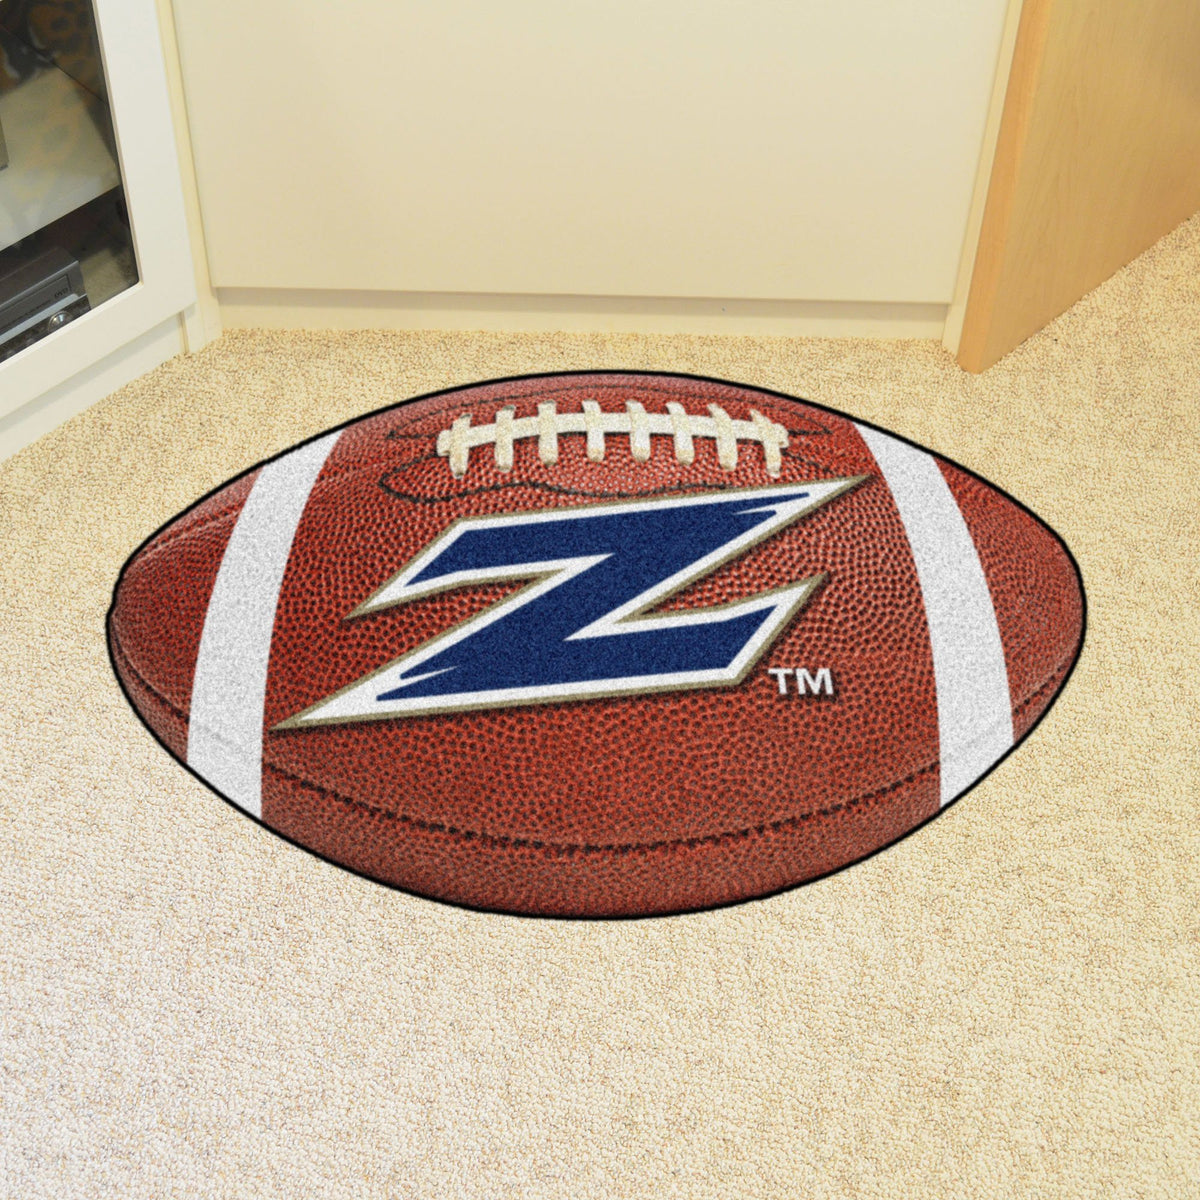 Collegiate - Football Mat: A - K Collegiate Mats, Rectangular Mats, Football Mat, Collegiate, Home Fan Mats Akron